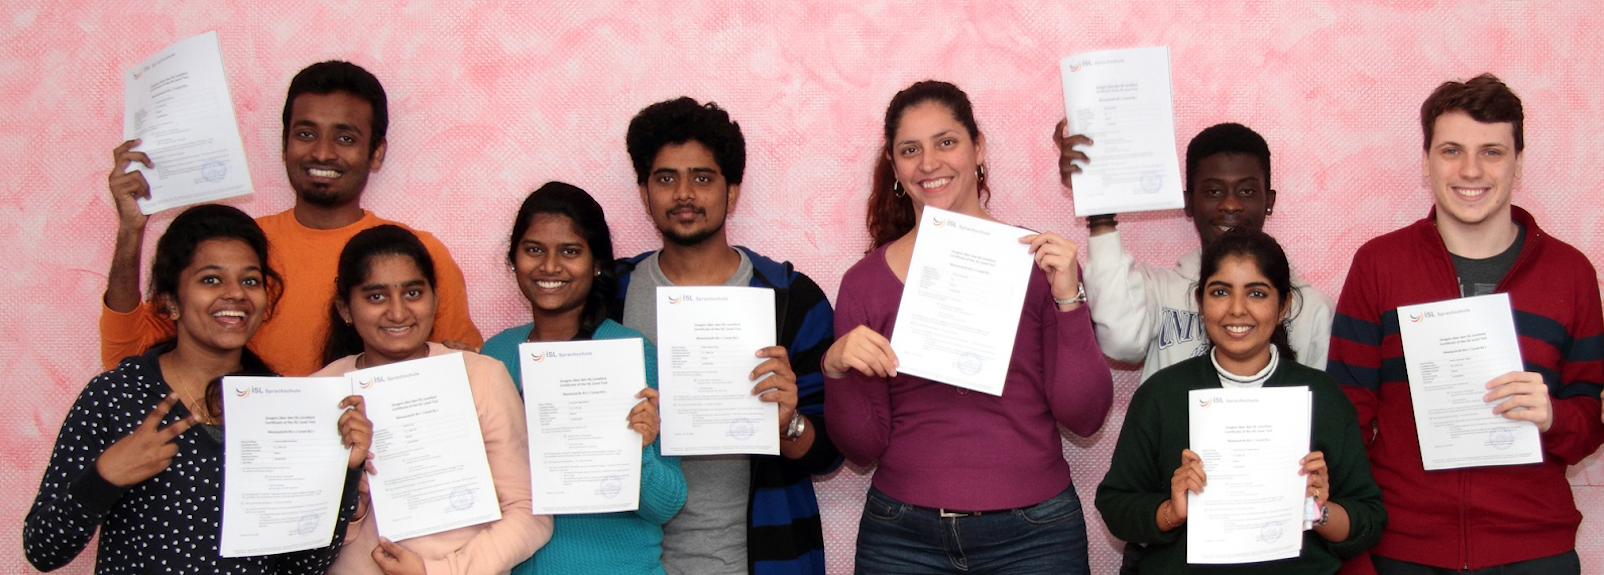 ISL_Sprachschule_certification ceremony.png